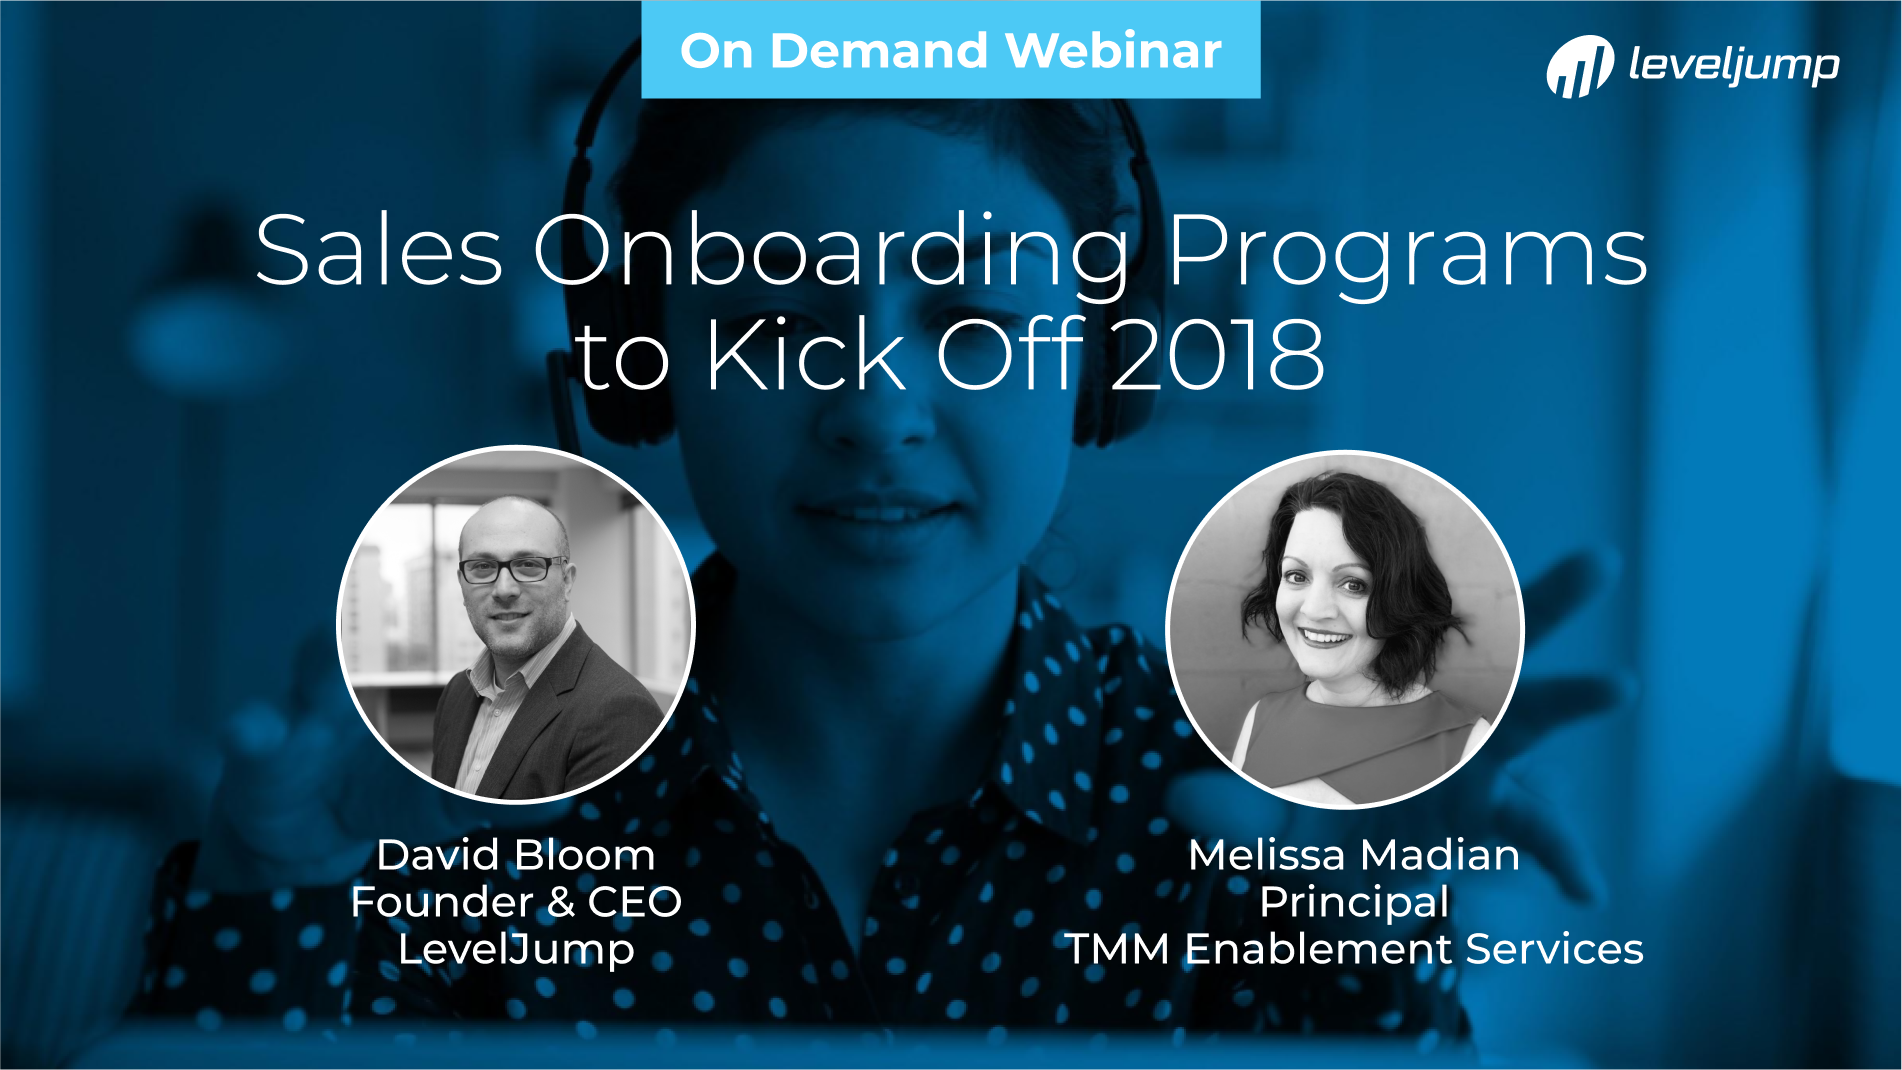 Sales Onboarding Programs to Kick Off 2018